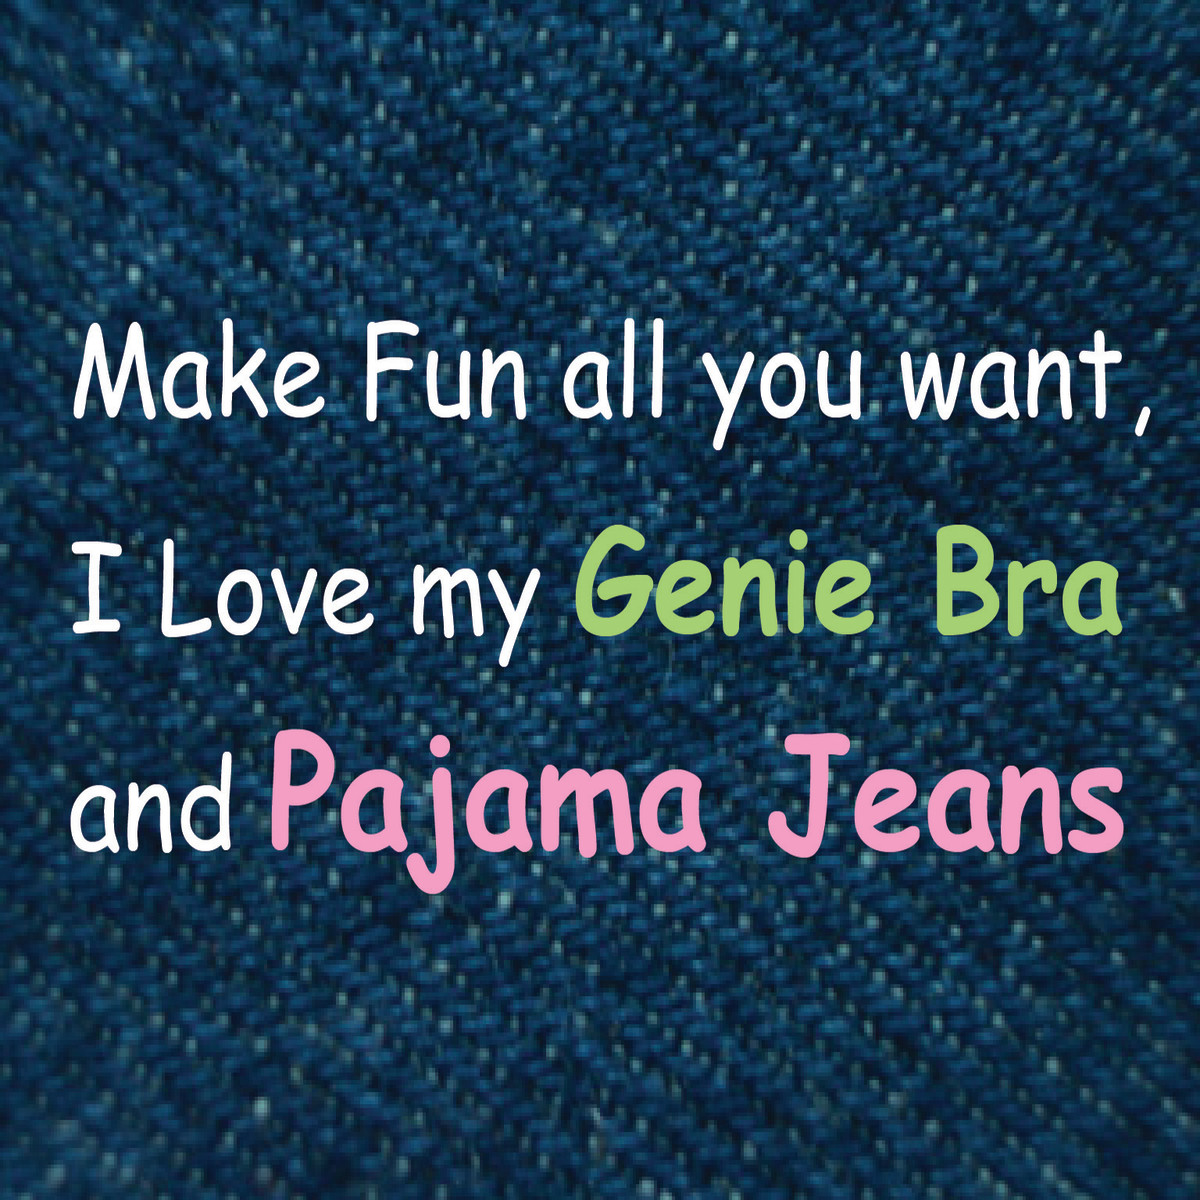 Review of the Genie Bra and Pajama Jeans